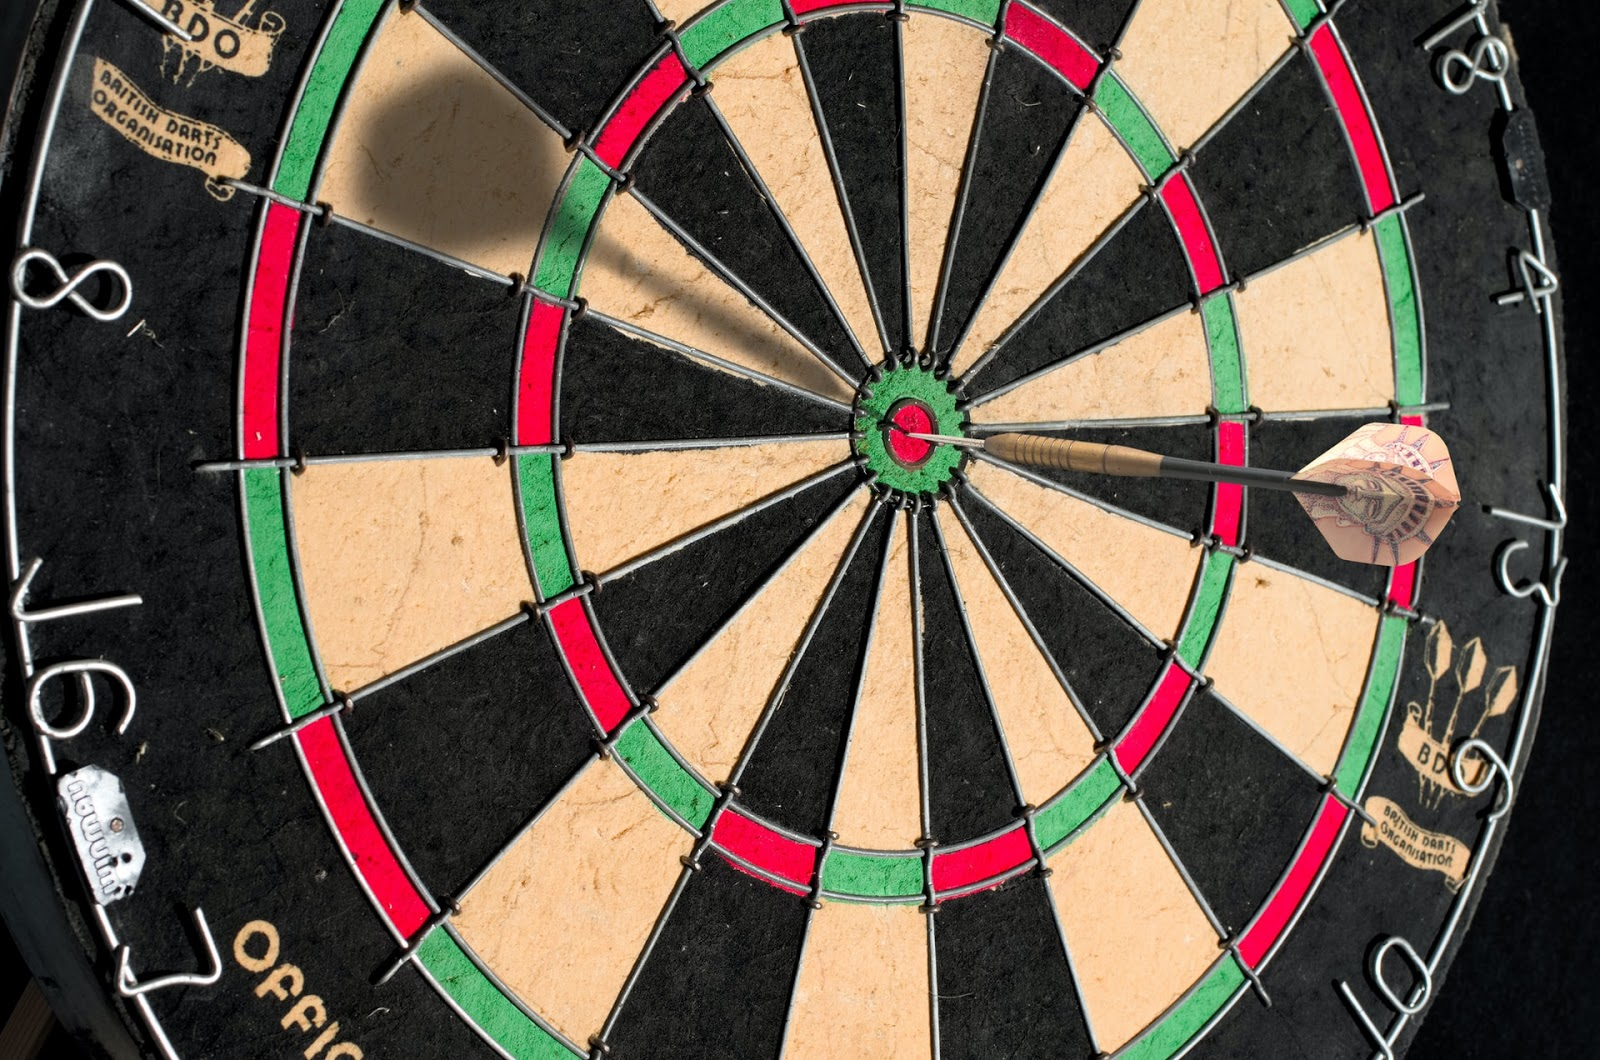 A dartboard which is a metaphor for hitting your targets in business